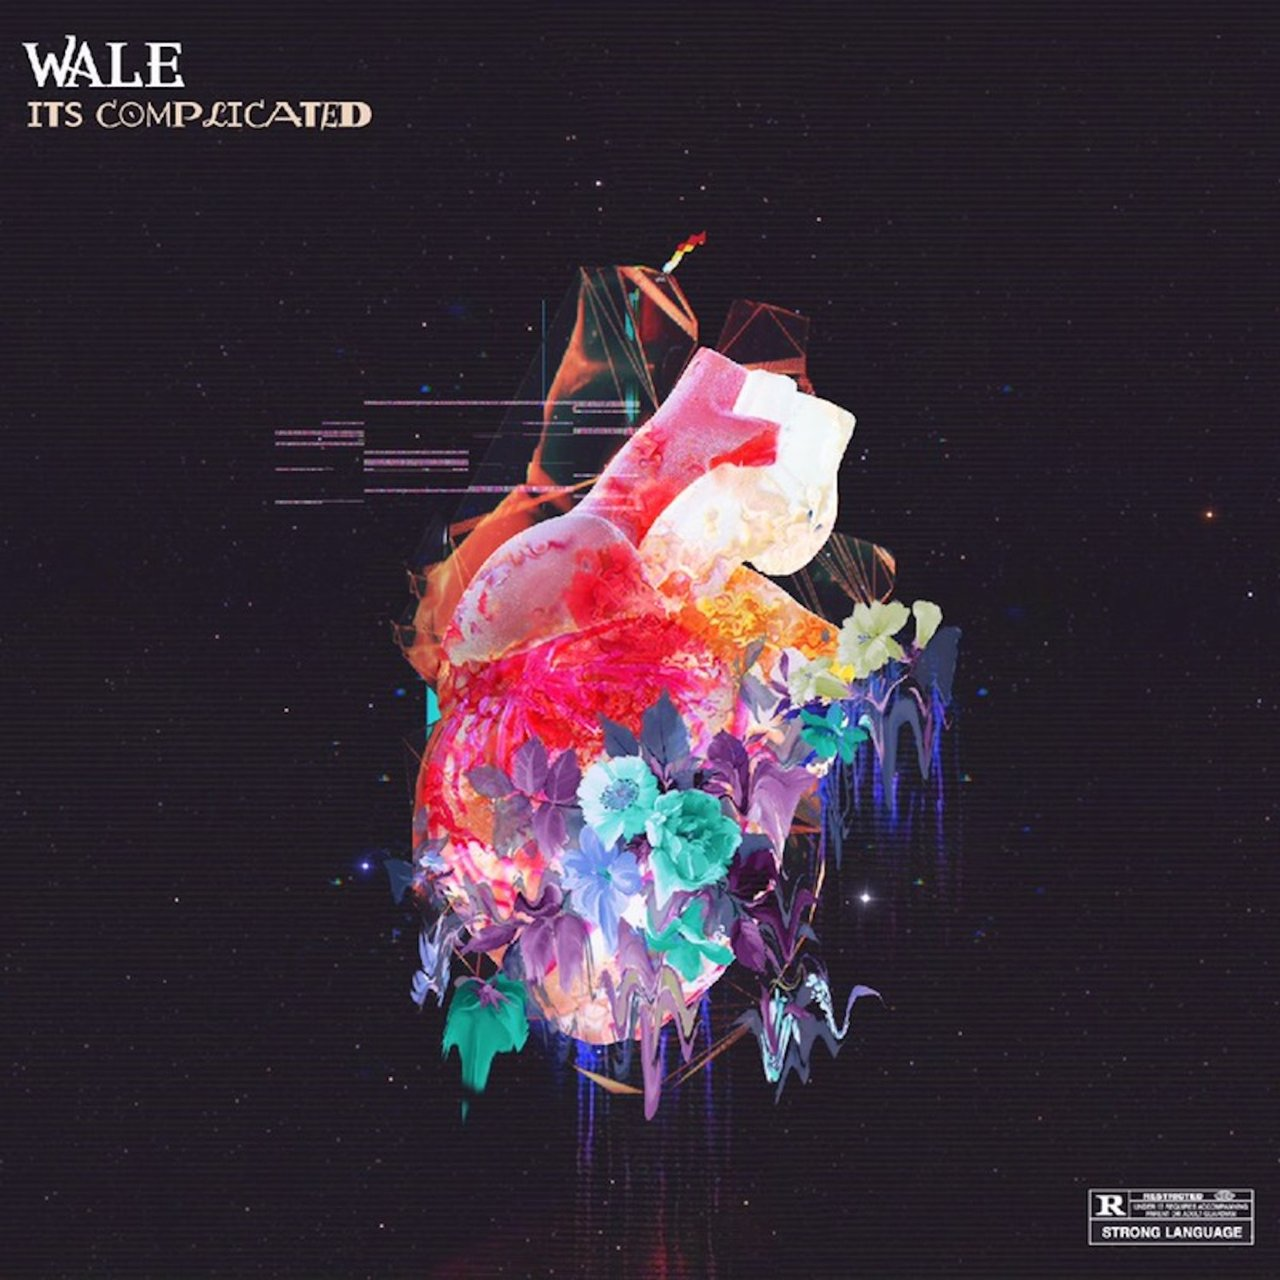 Tidal listen to wale on tidal its complicated ep izmirmasajfo